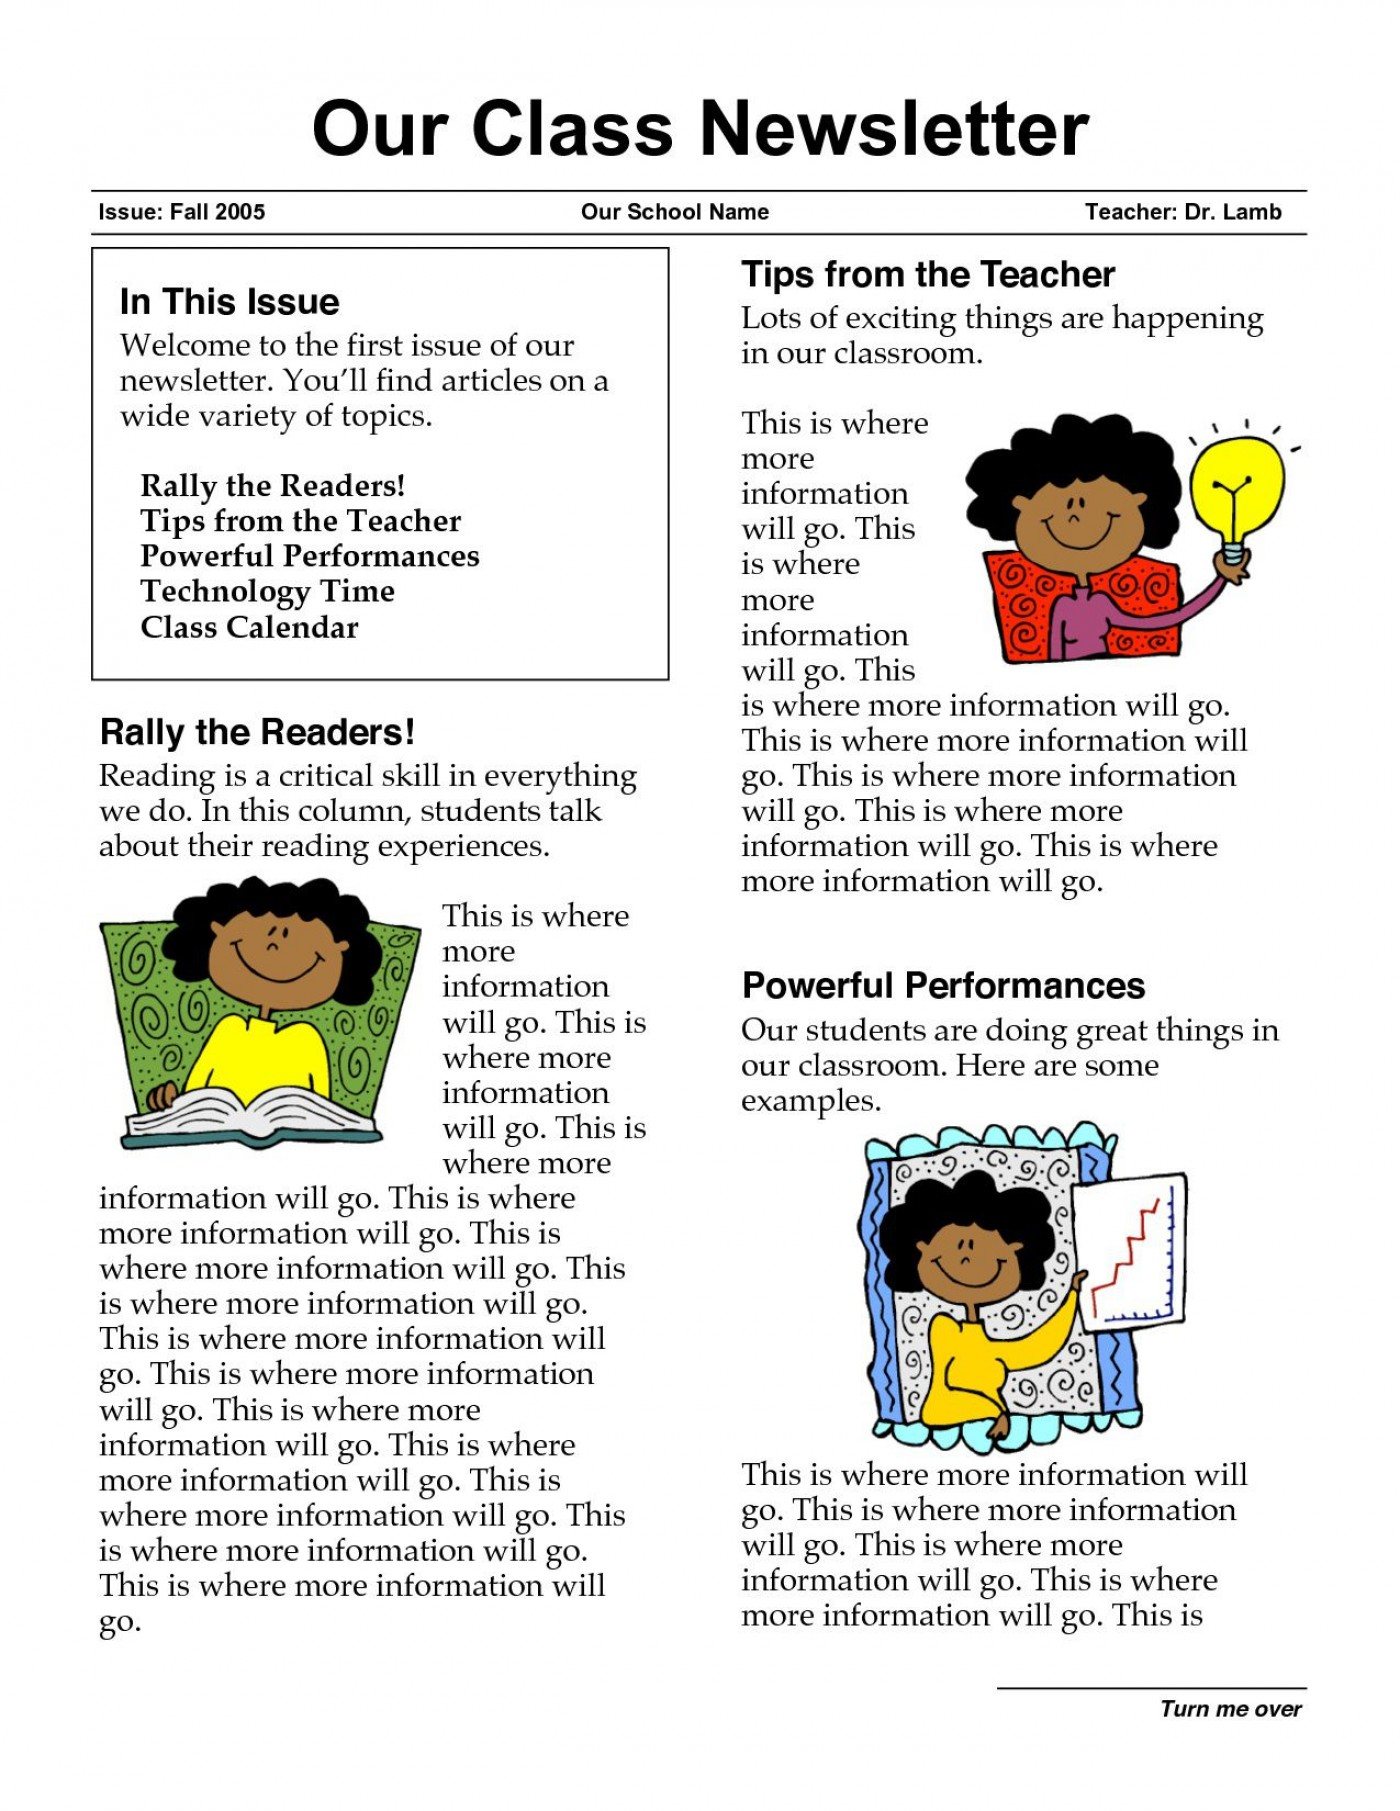 003 Fascinating Free Newsletter Template For Teacher Image  Downloadable Editable Preschool1400